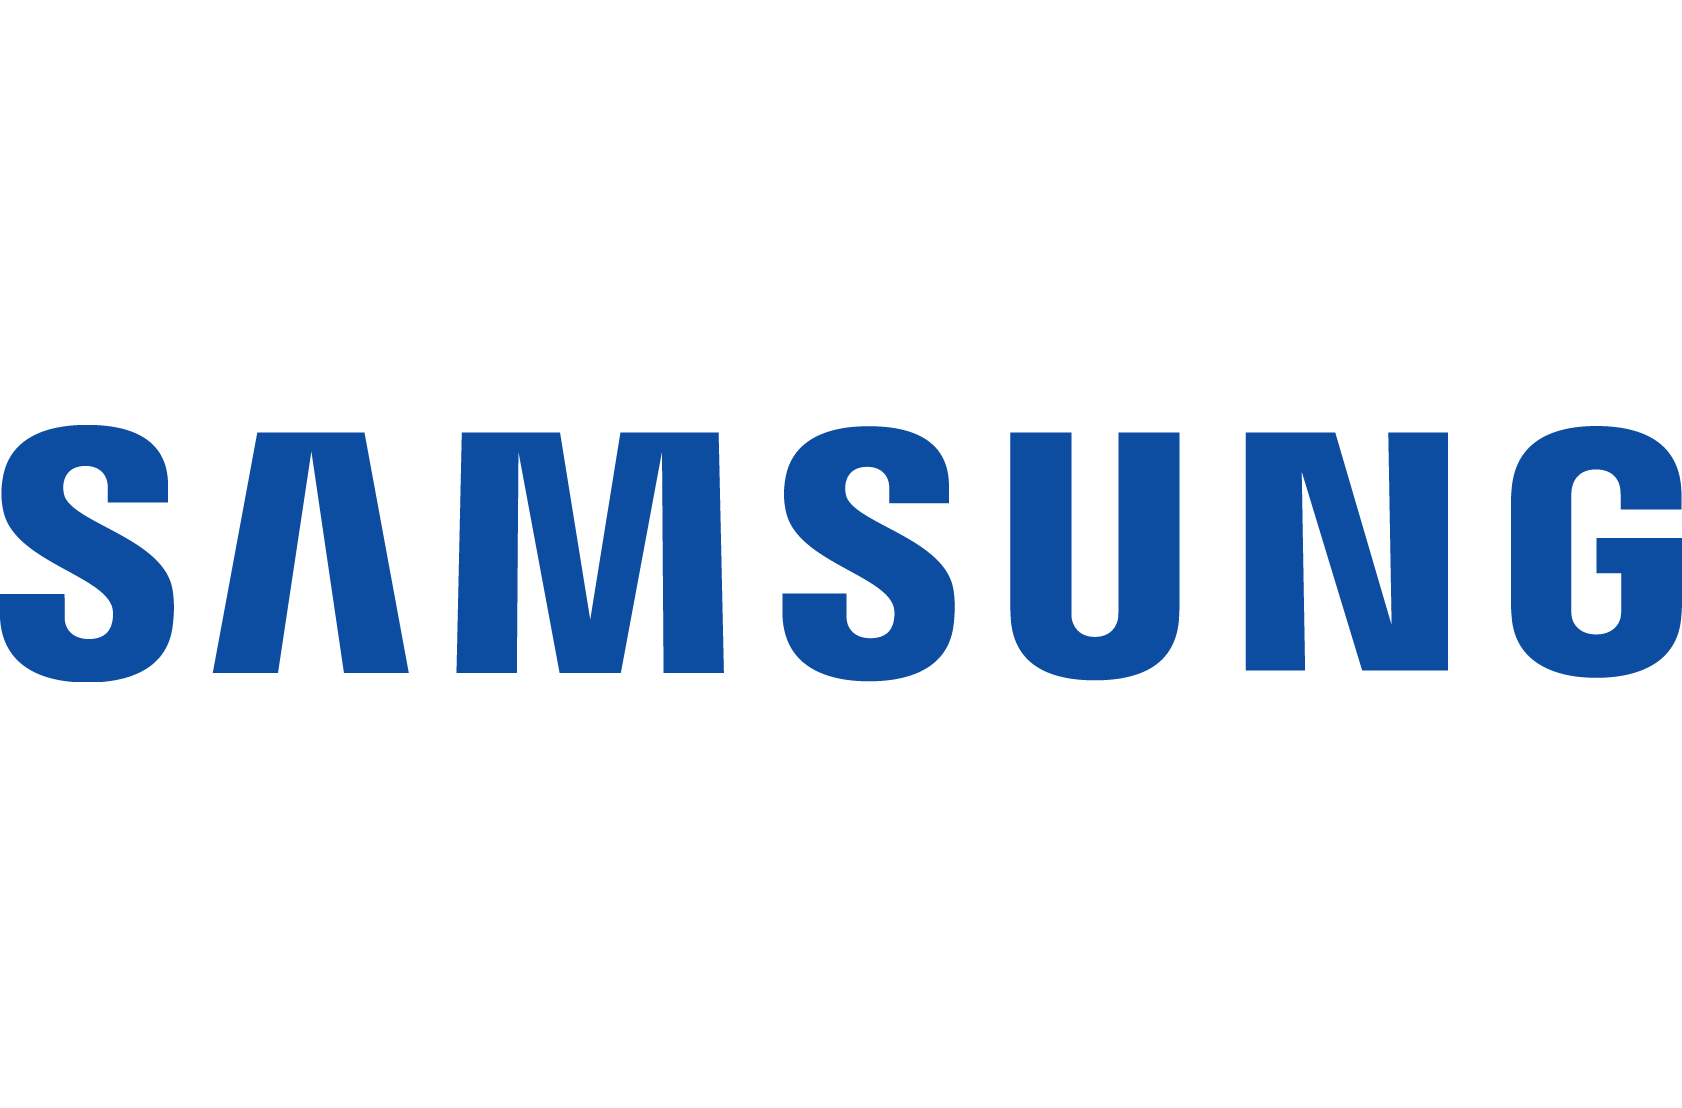 samsung | Deluxe company